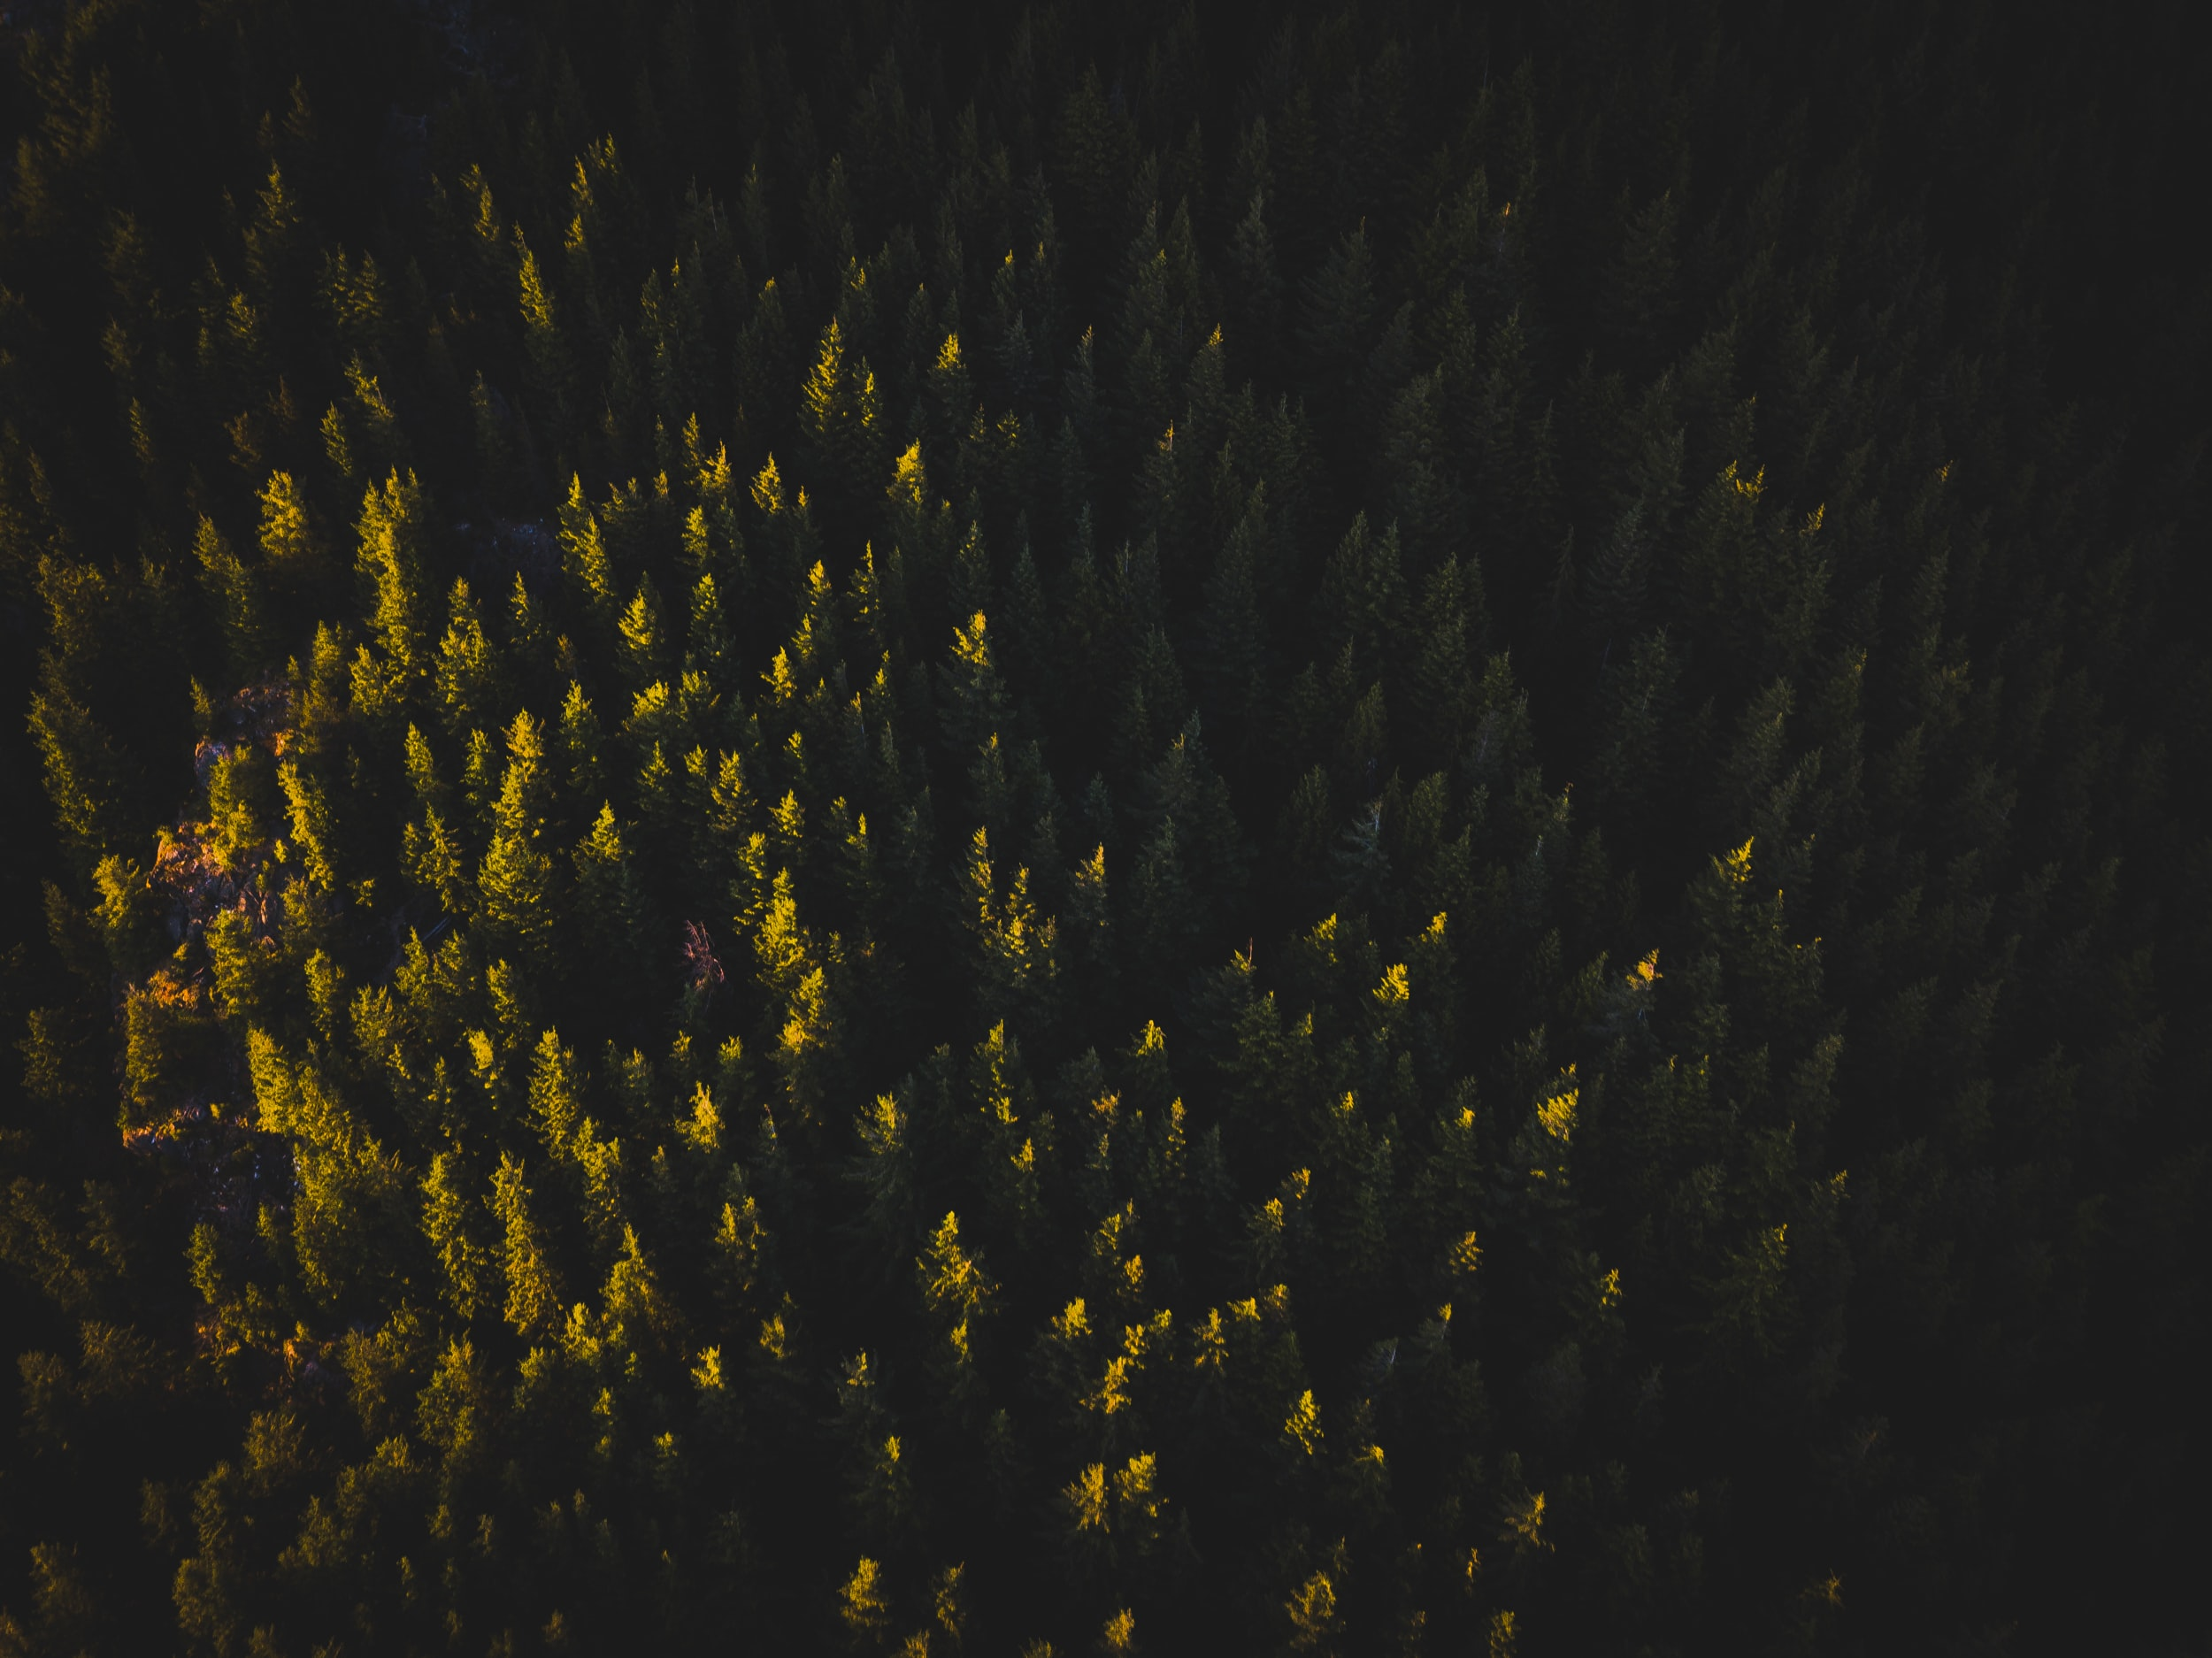 aerial photo of trees